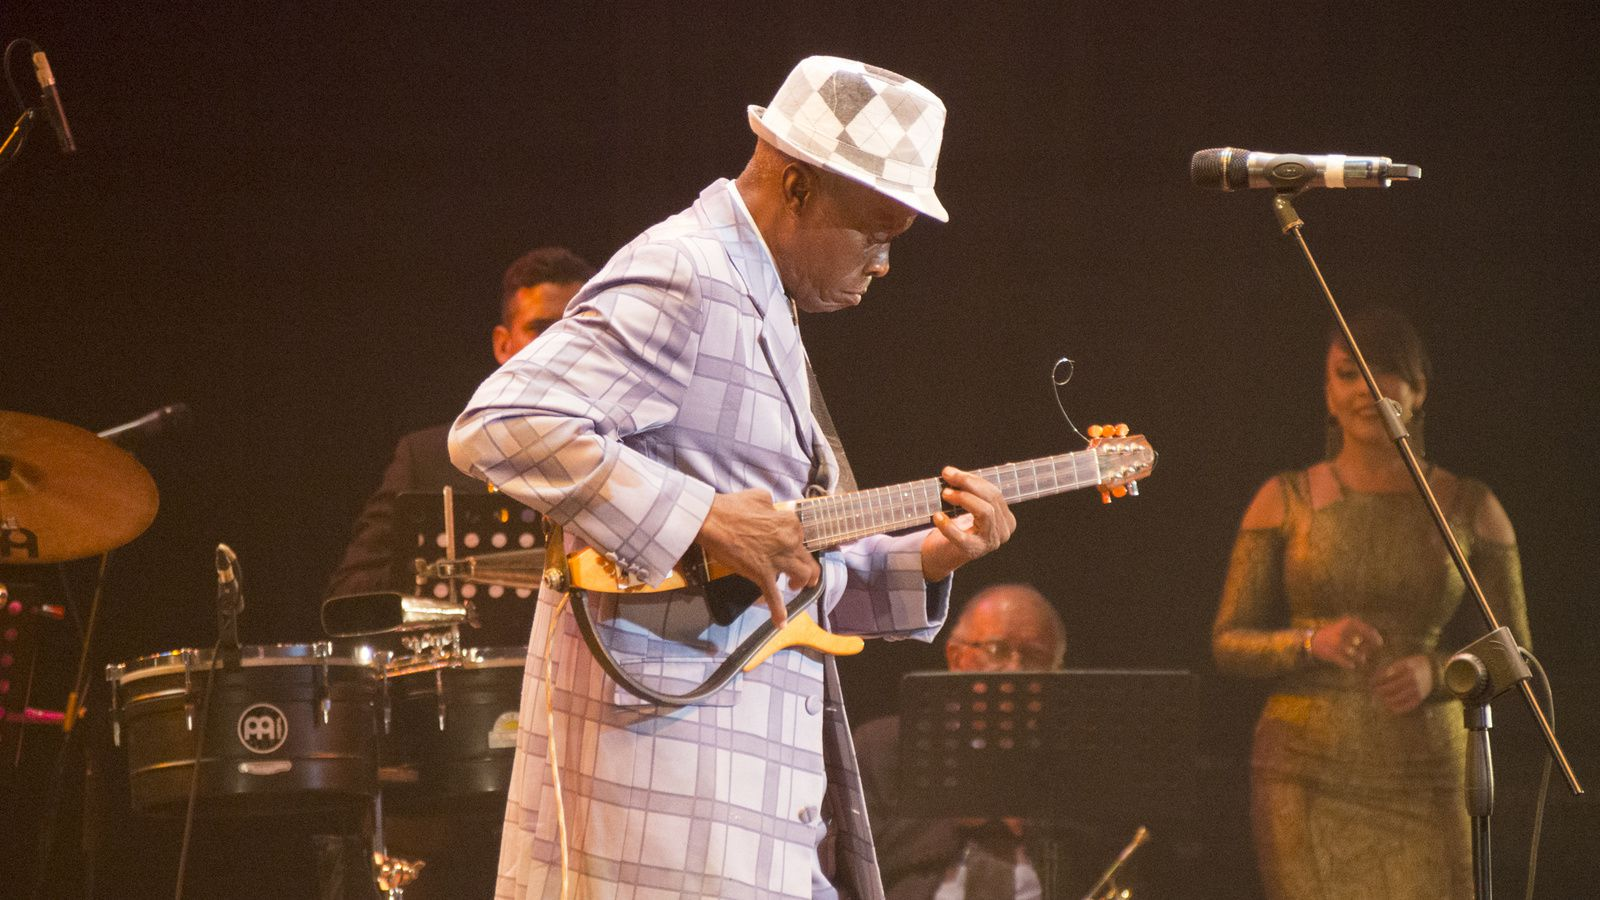 [Video Interview] Buena Vista Social Club : Adios le 26 juillet 2017 au cinéma.